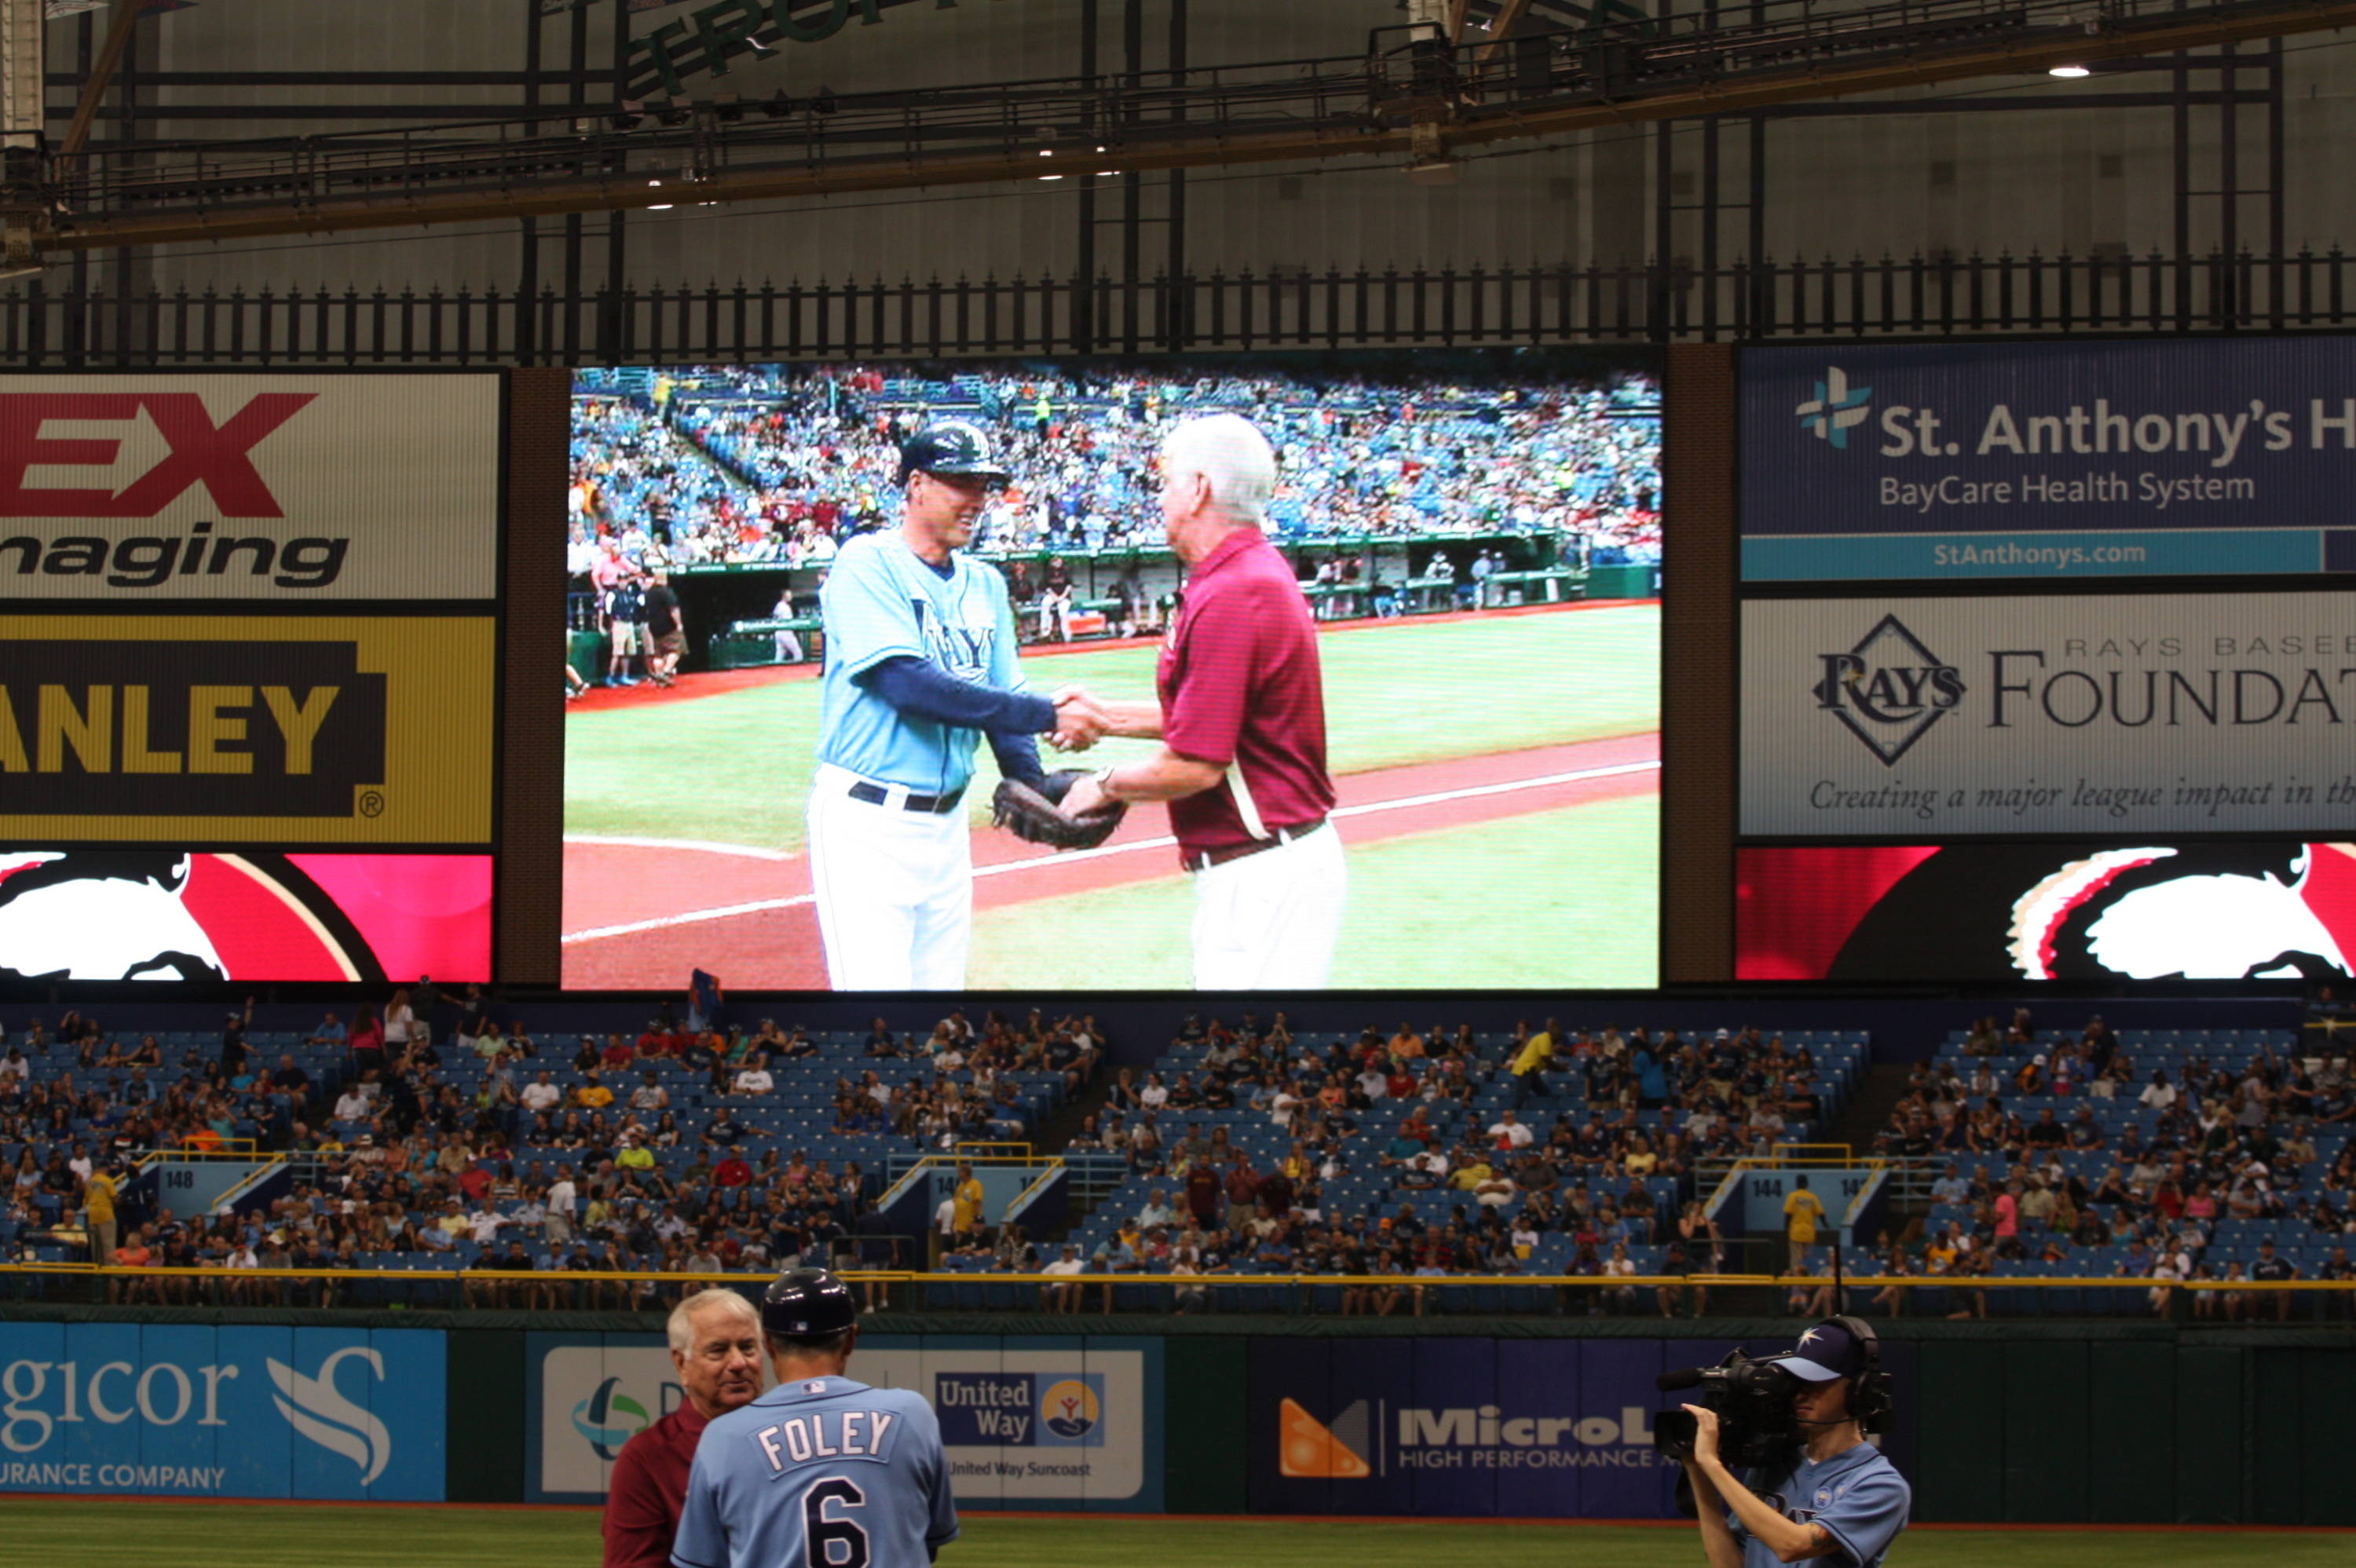 Head coach Mike Martin shakes hands with Rays third base coach Tom Foley who caught the ceremonial first pitch.